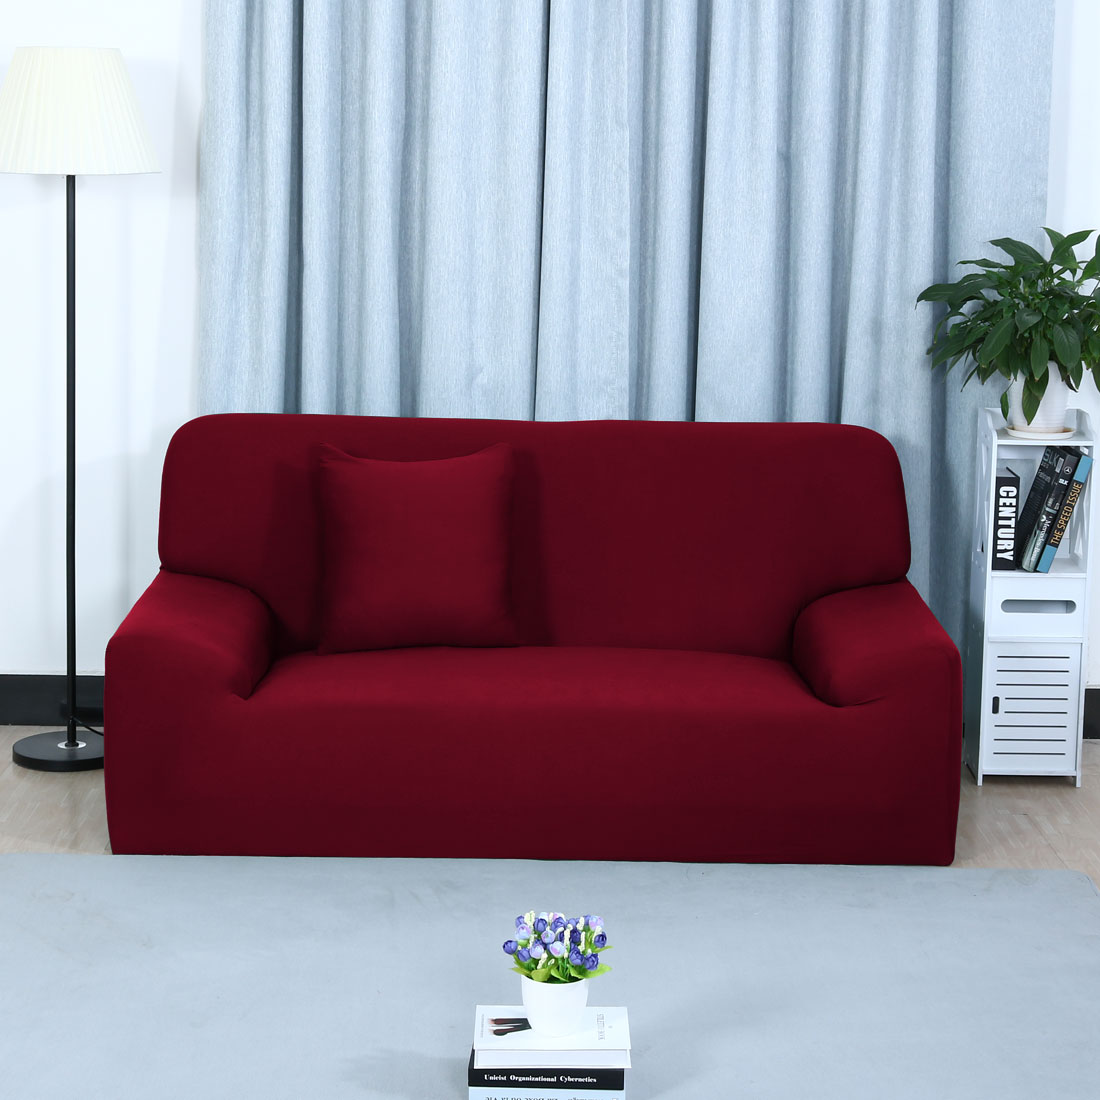 PiccoCasa Stretch Polyester 3 Seats Sofa Couch Covers Slipcovers, Solid Color